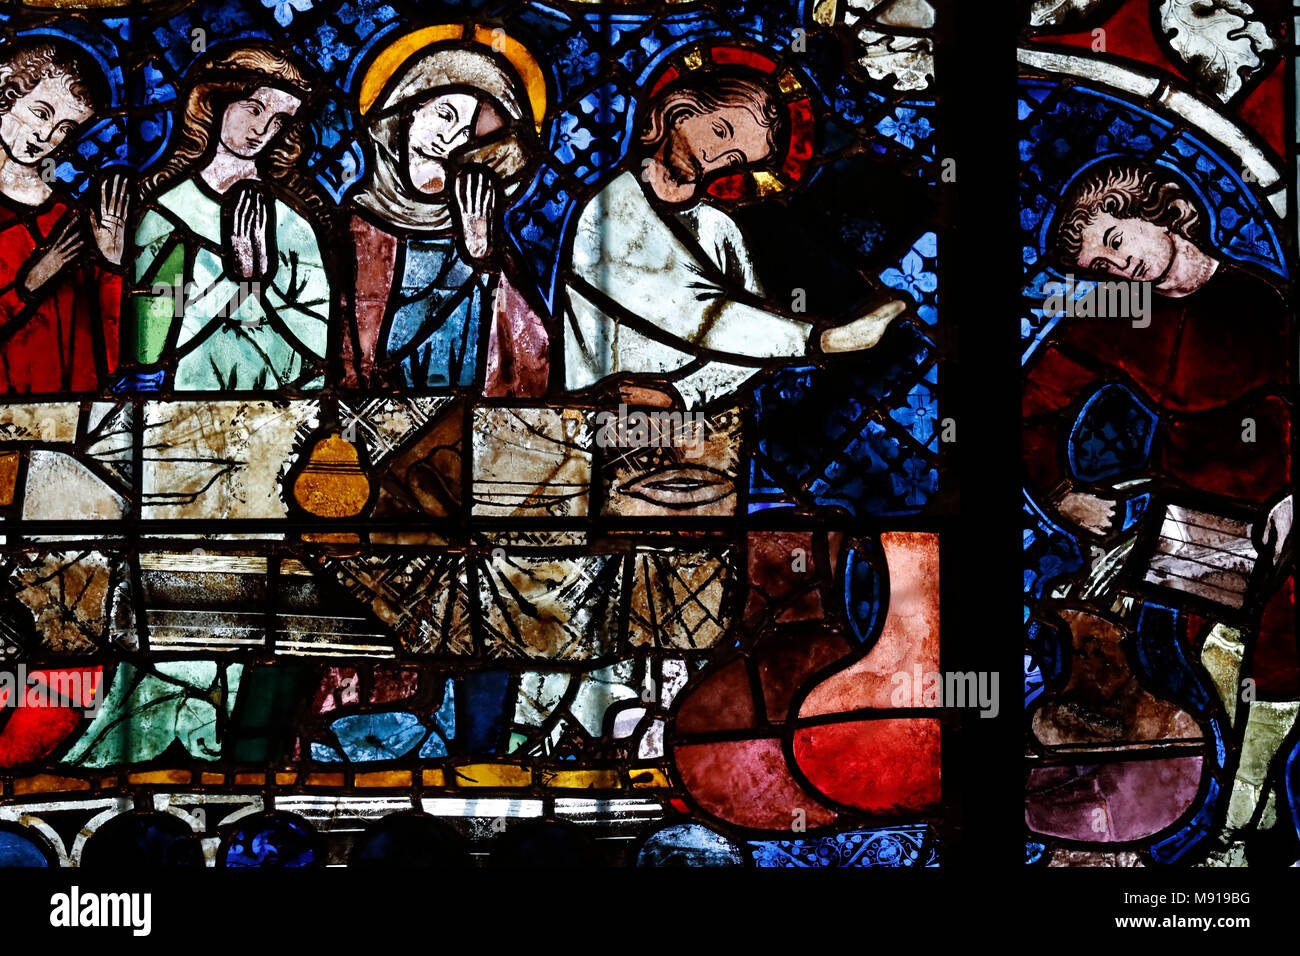 Our Lady of Strasbourg Cathedral. Stained glass window. The transformation of water into wine at the Marriage at Cana.  14 th century.  Strasbourg. Fr - Stock Image